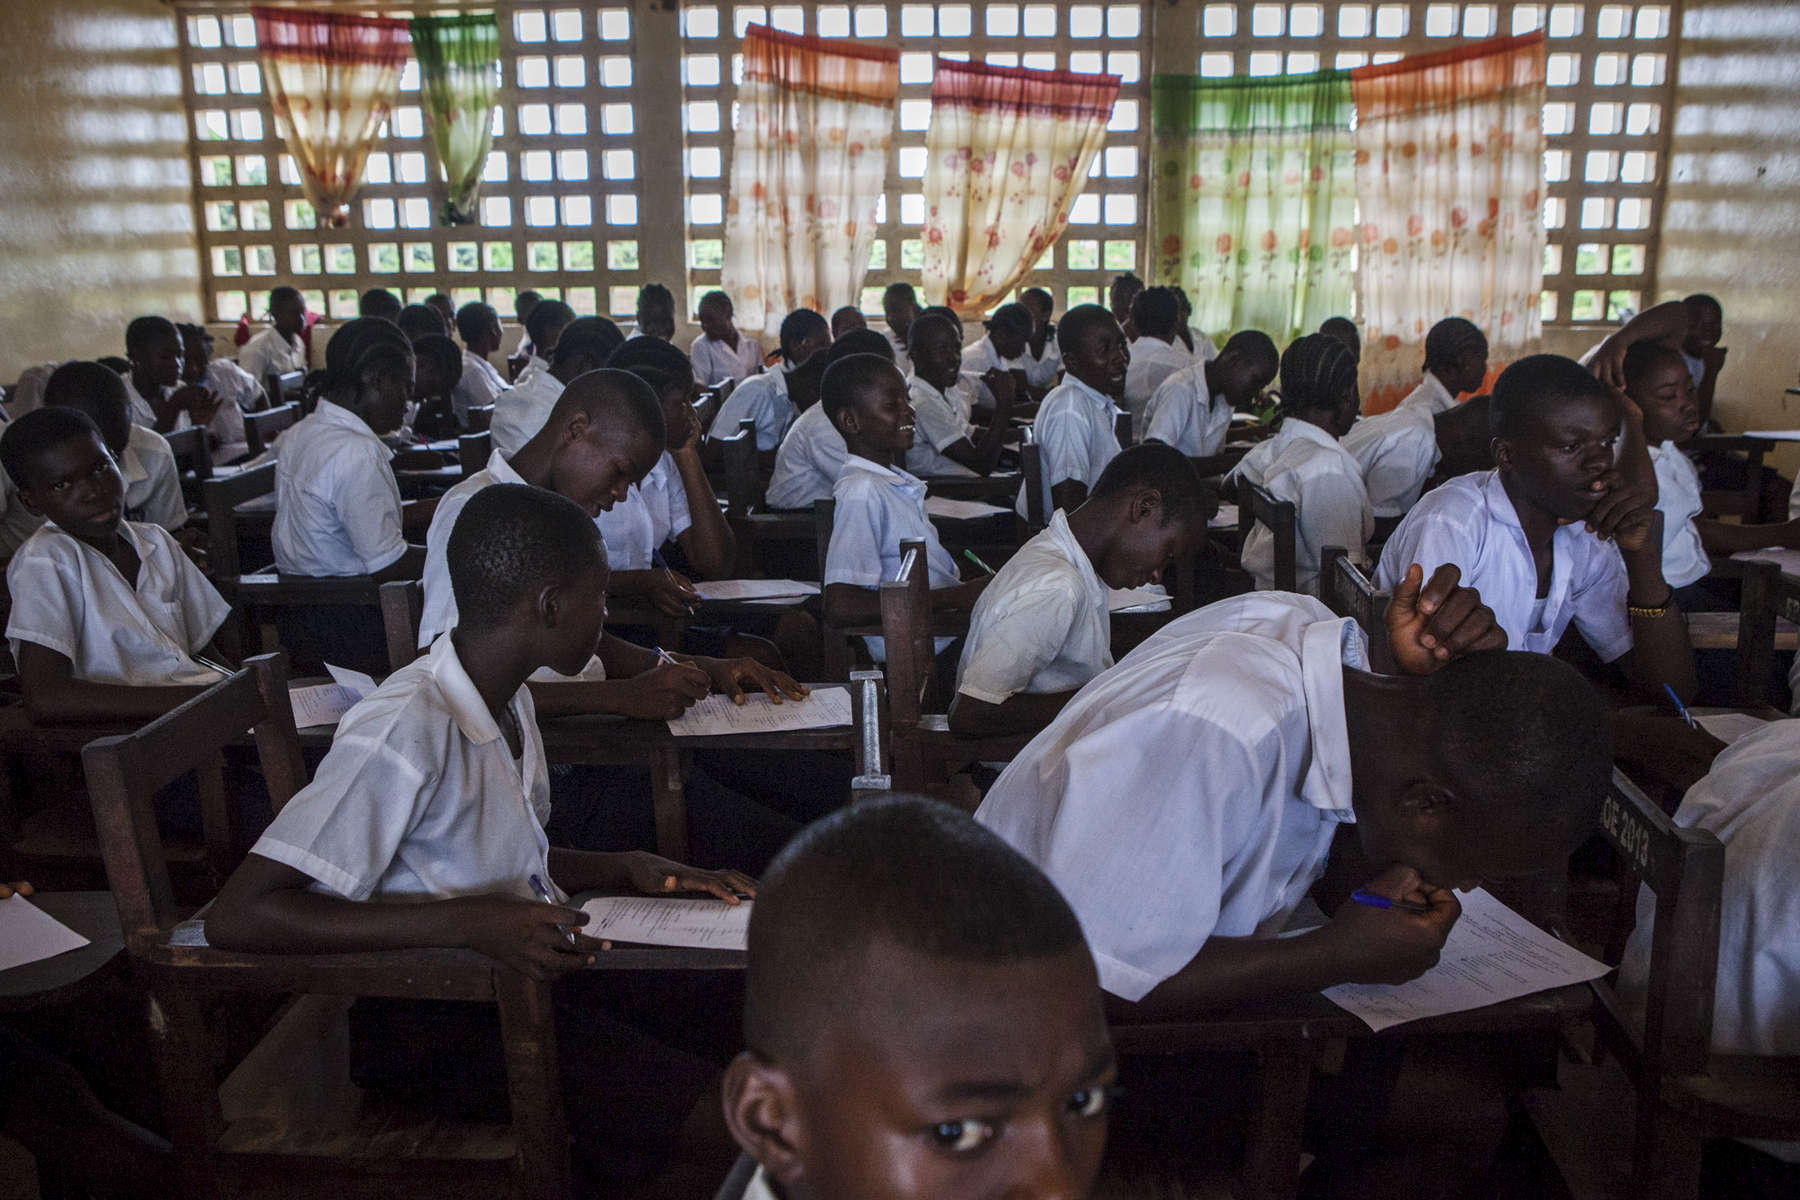 Students take exams at the R.S. Caufield Public School in Unification, Liberia